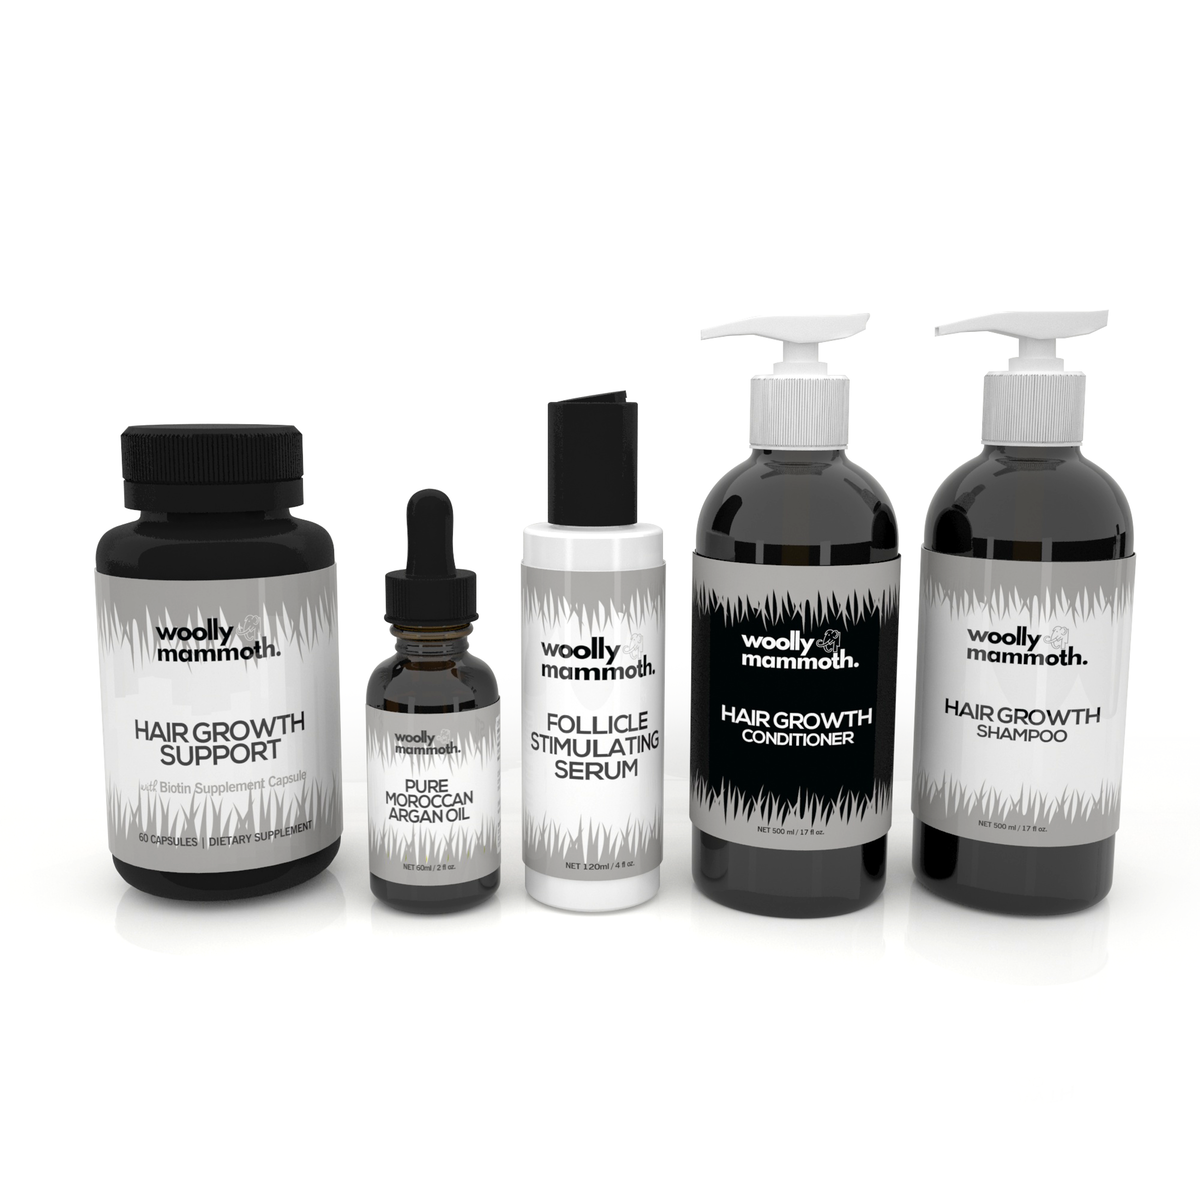 Label for 5 products in men's hair growth